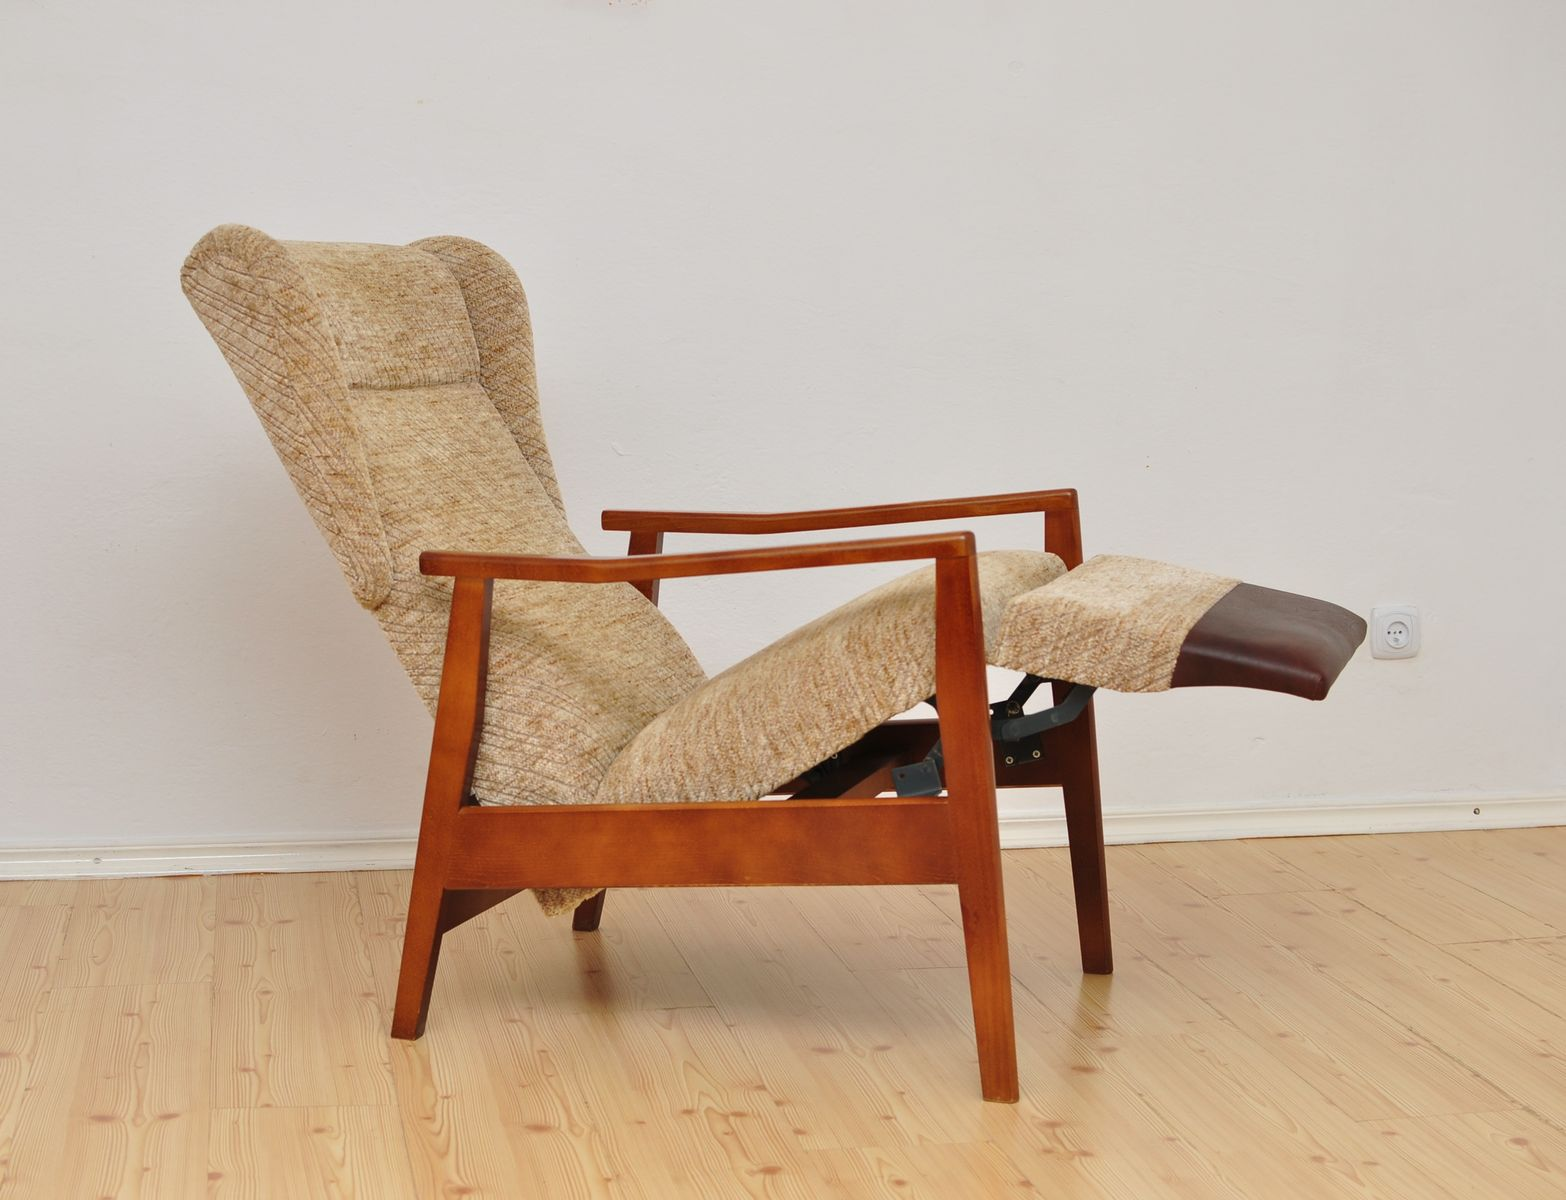 Reclining Lounge Chair 1960s : reclining lounge chairs - islam-shia.org